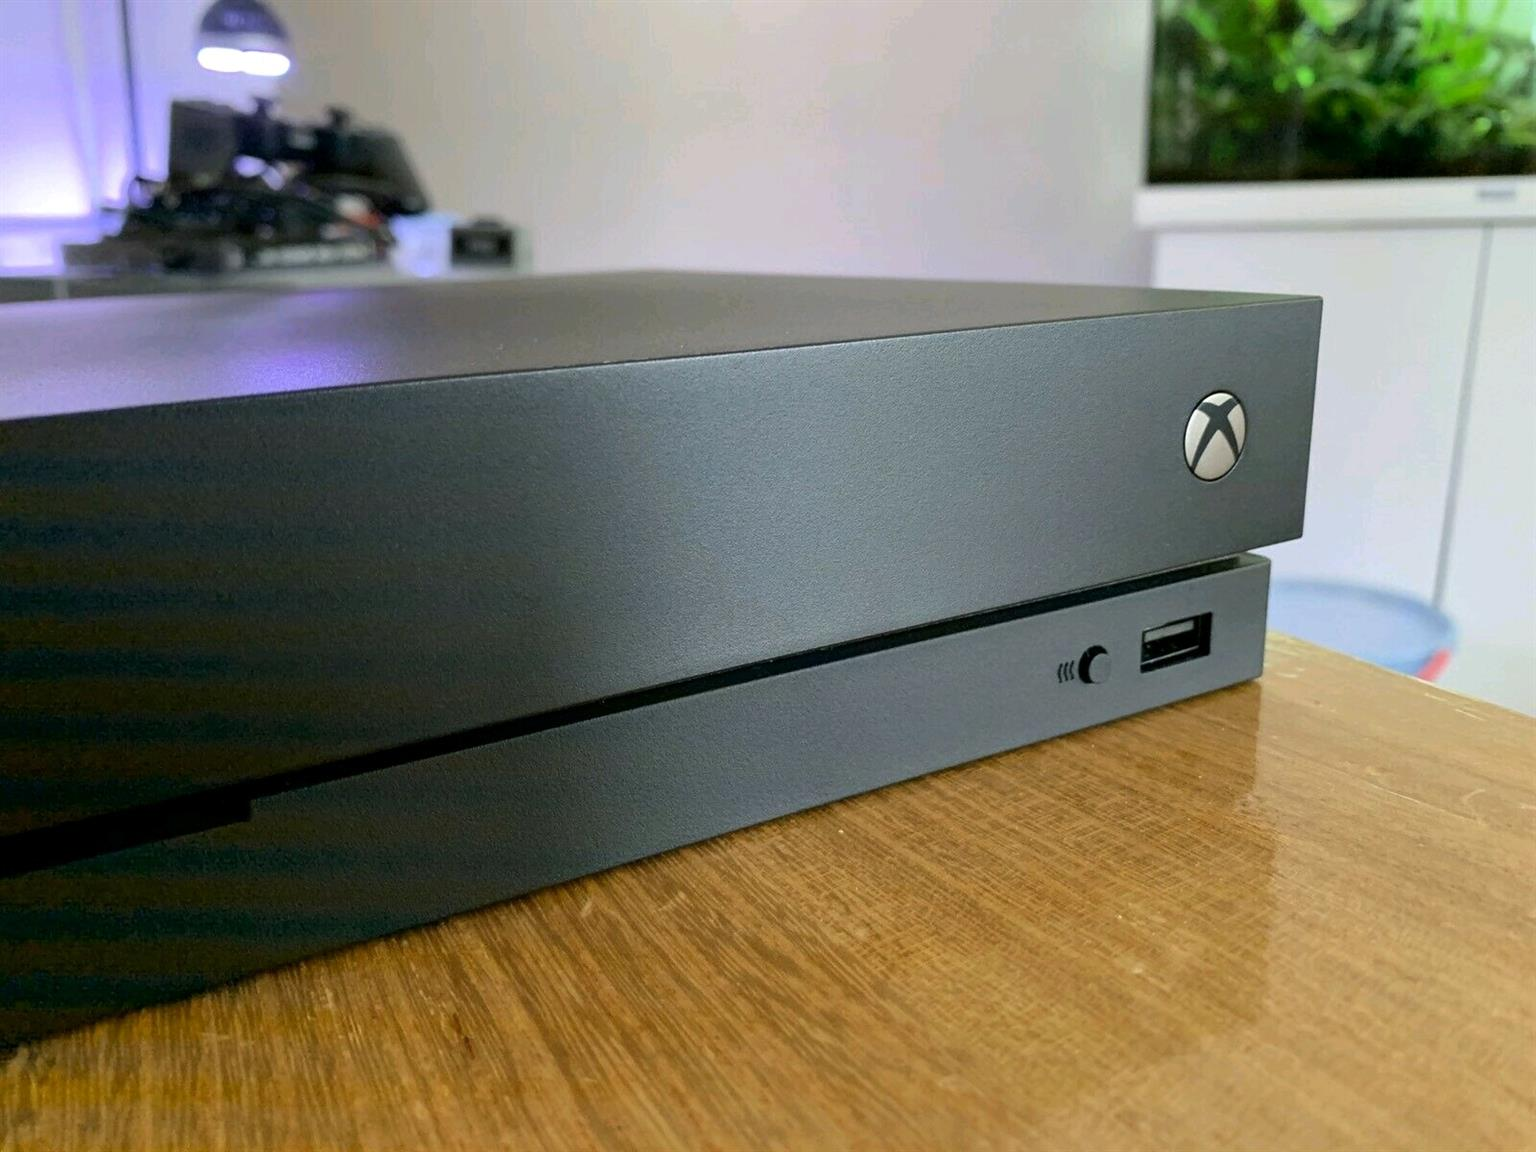 Xbox one x 1tb console includes all cables and 1 wireless control